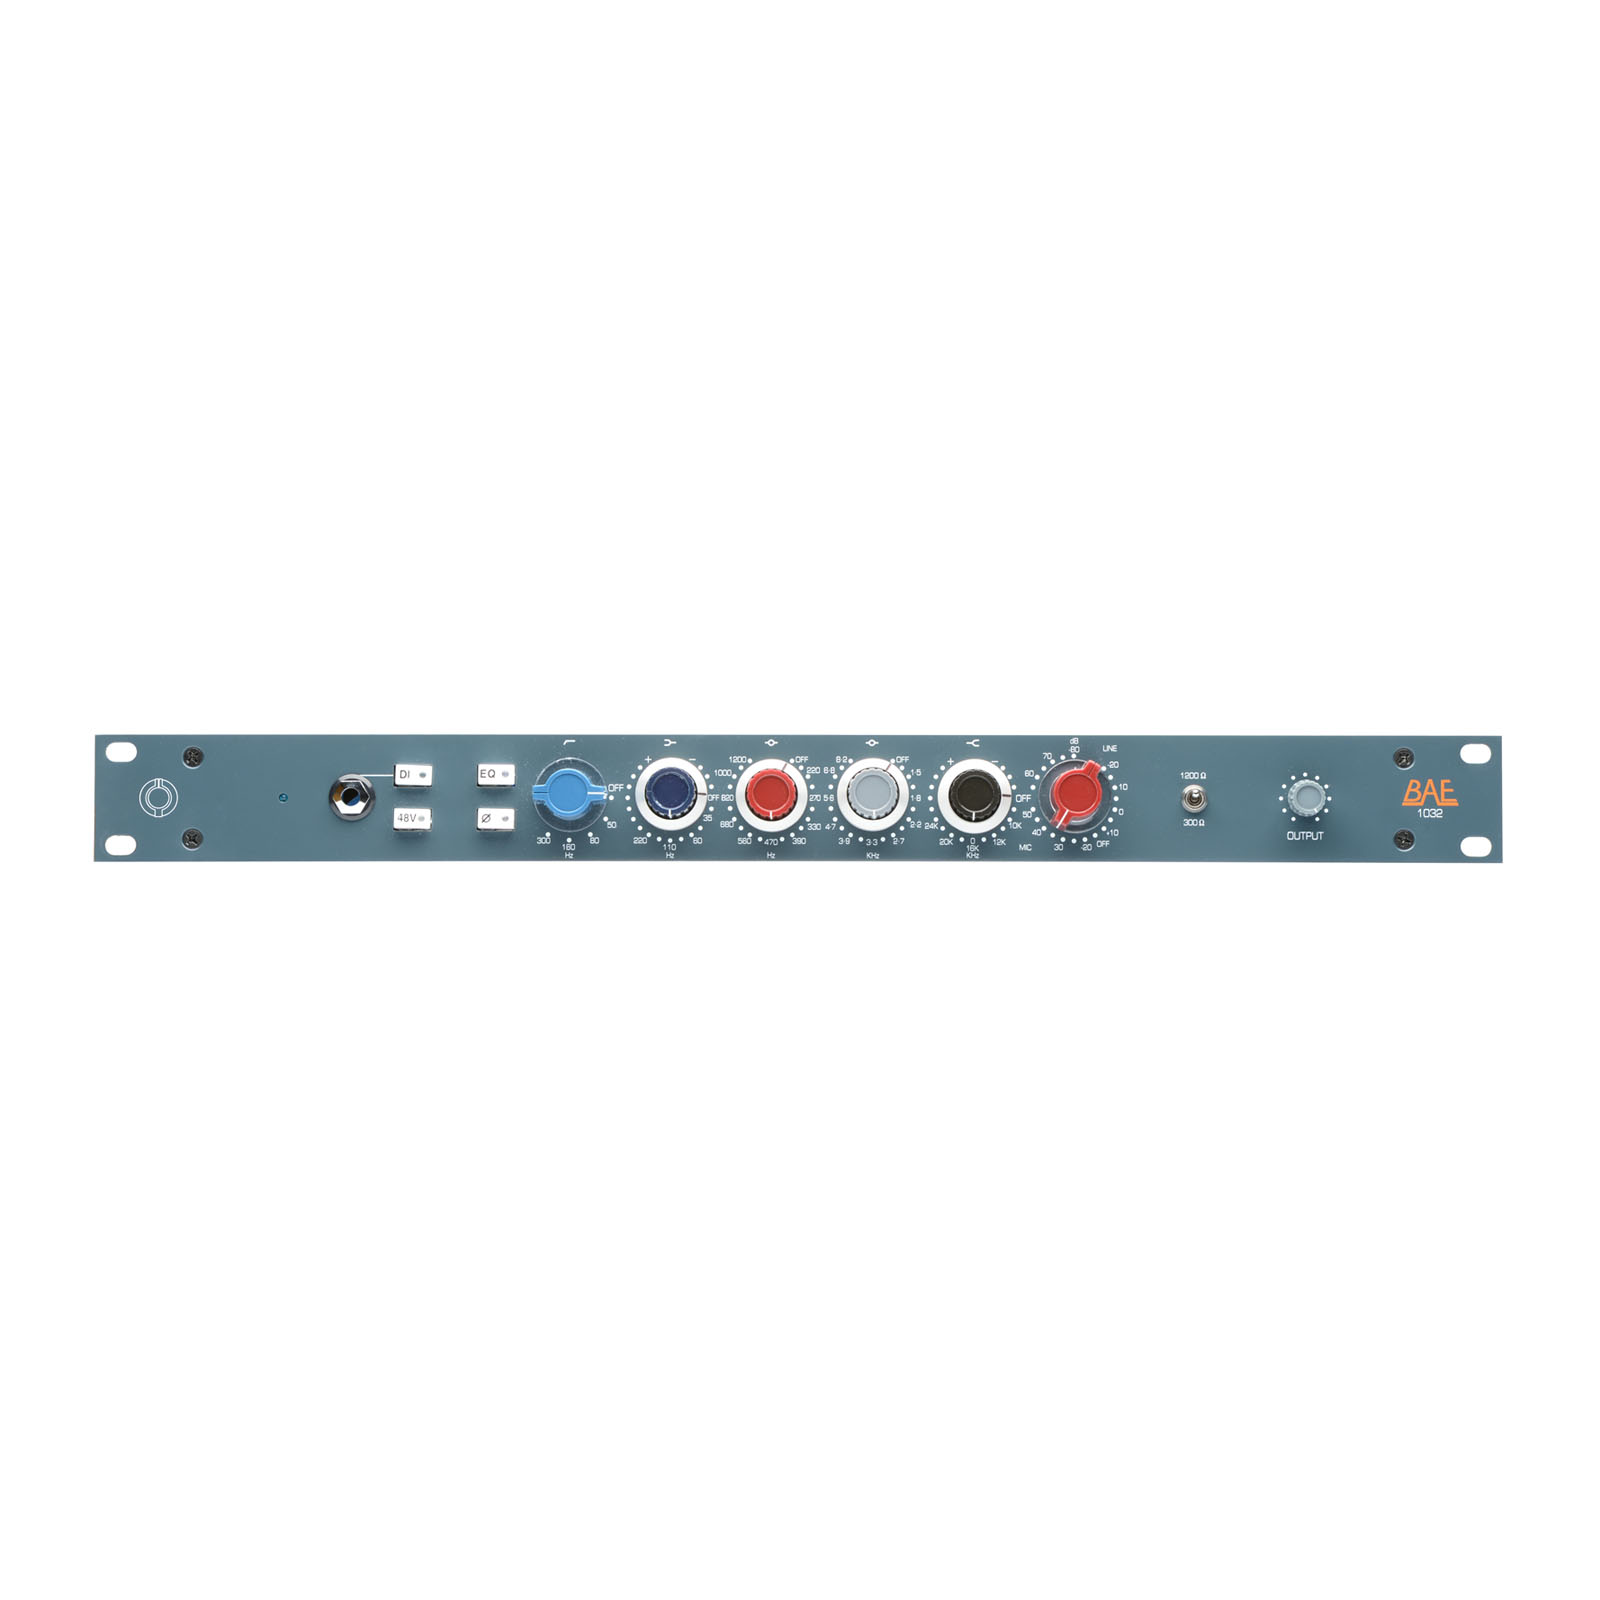 1032 Cbs 12 Circuit Wiring Module Click To Enlarge Image Rm